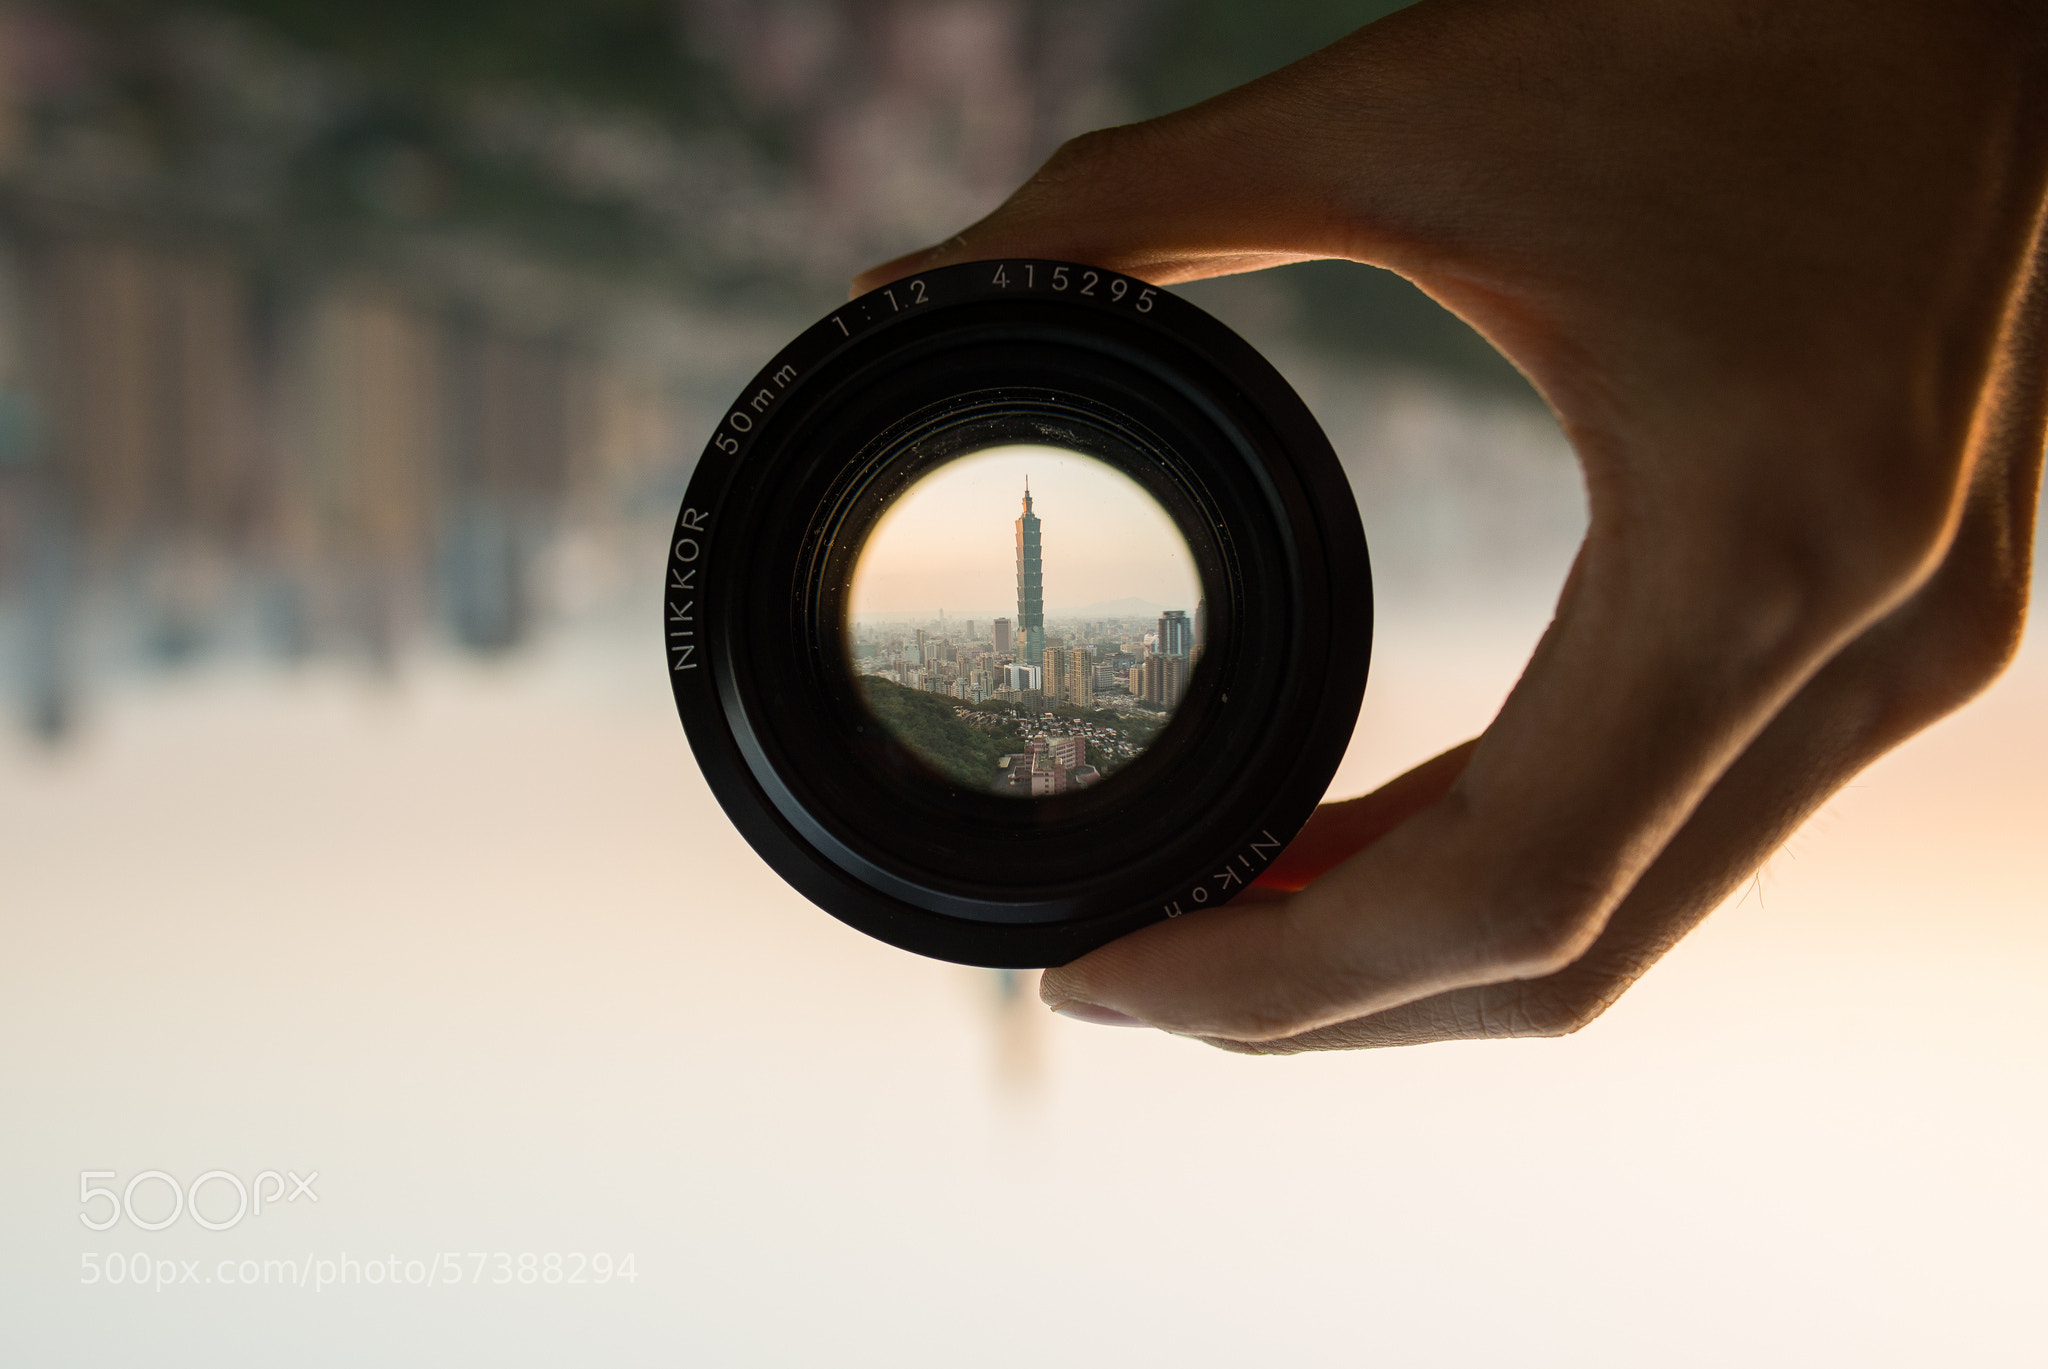 Photograph Taipei in a Nutshell by Justin Dong on 500px